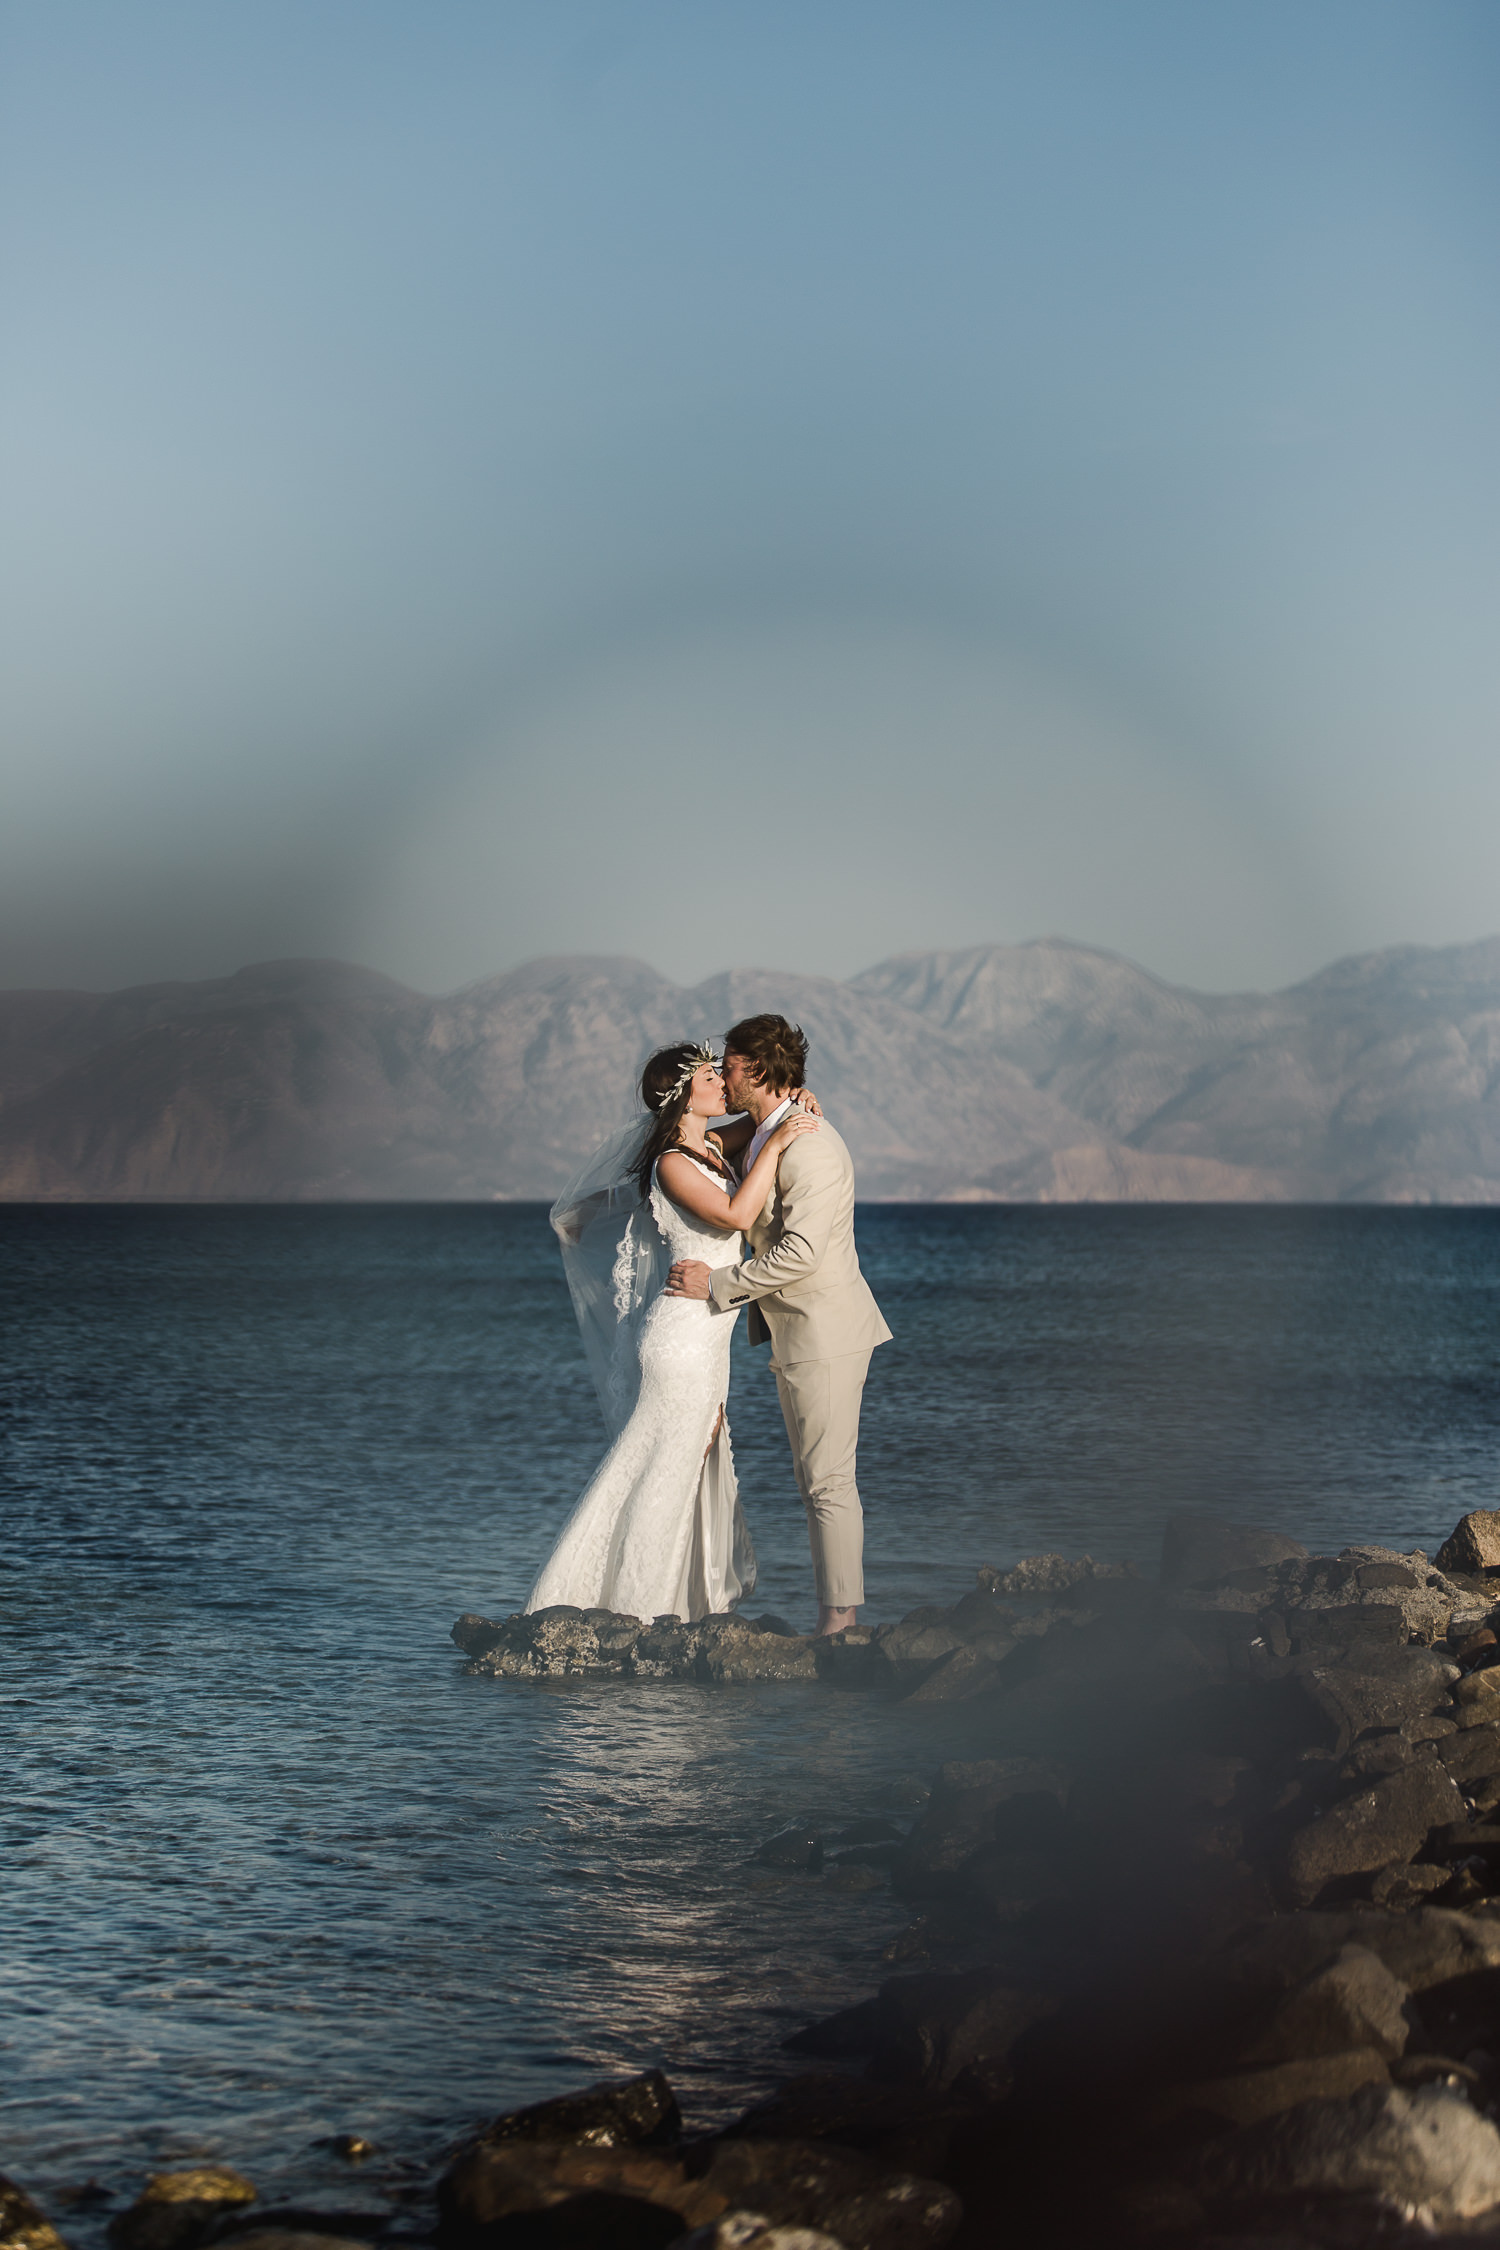 Fotomagoria - Elounda - Crete - Greece Wedding 411.jpg